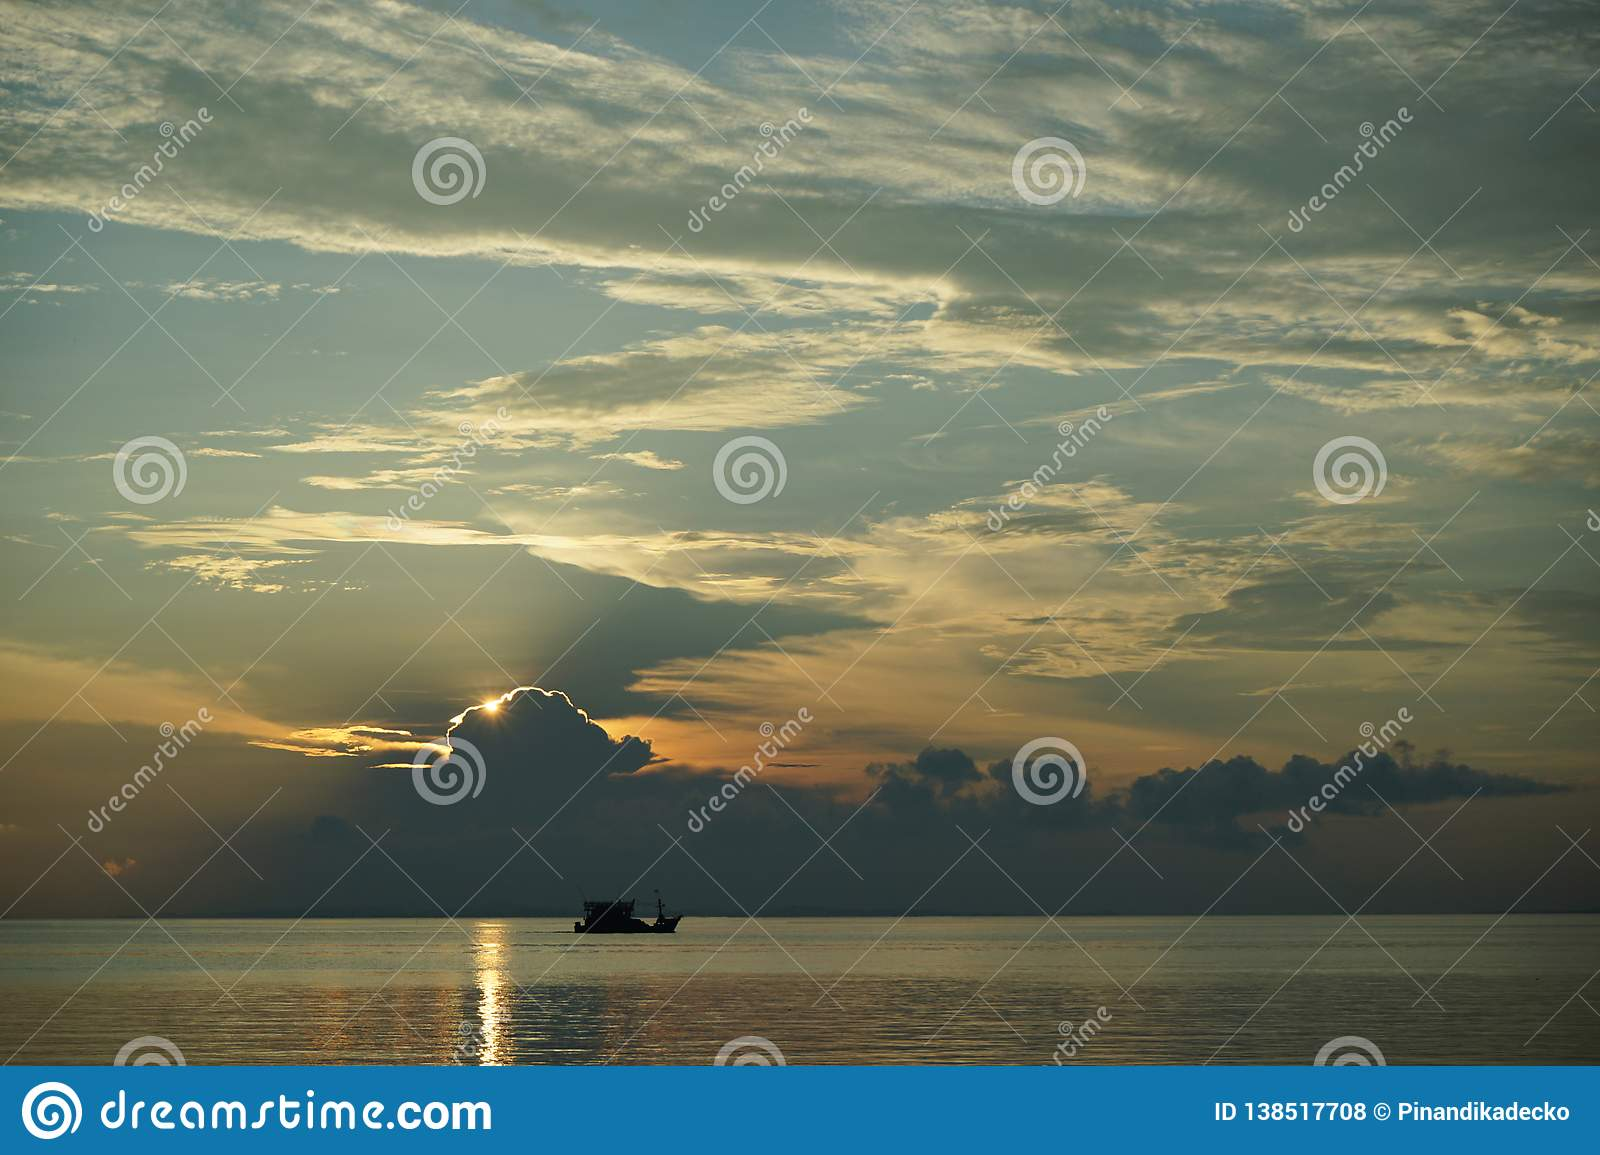 Boat at Sunset and sunrise with dramatic sky over ocean